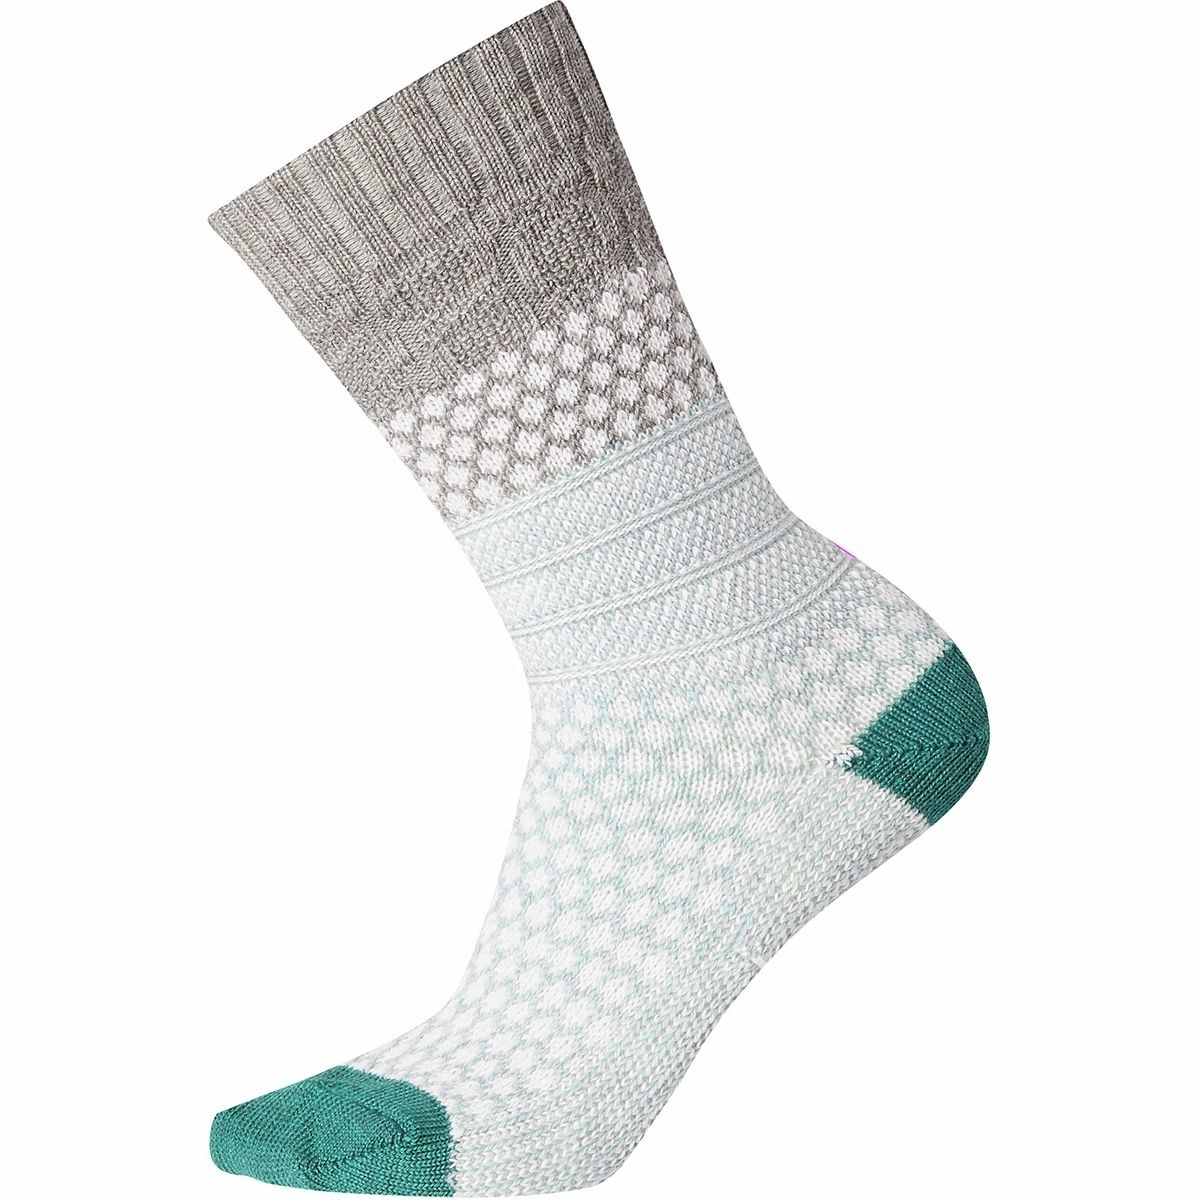 knit socks that look thick and sporty